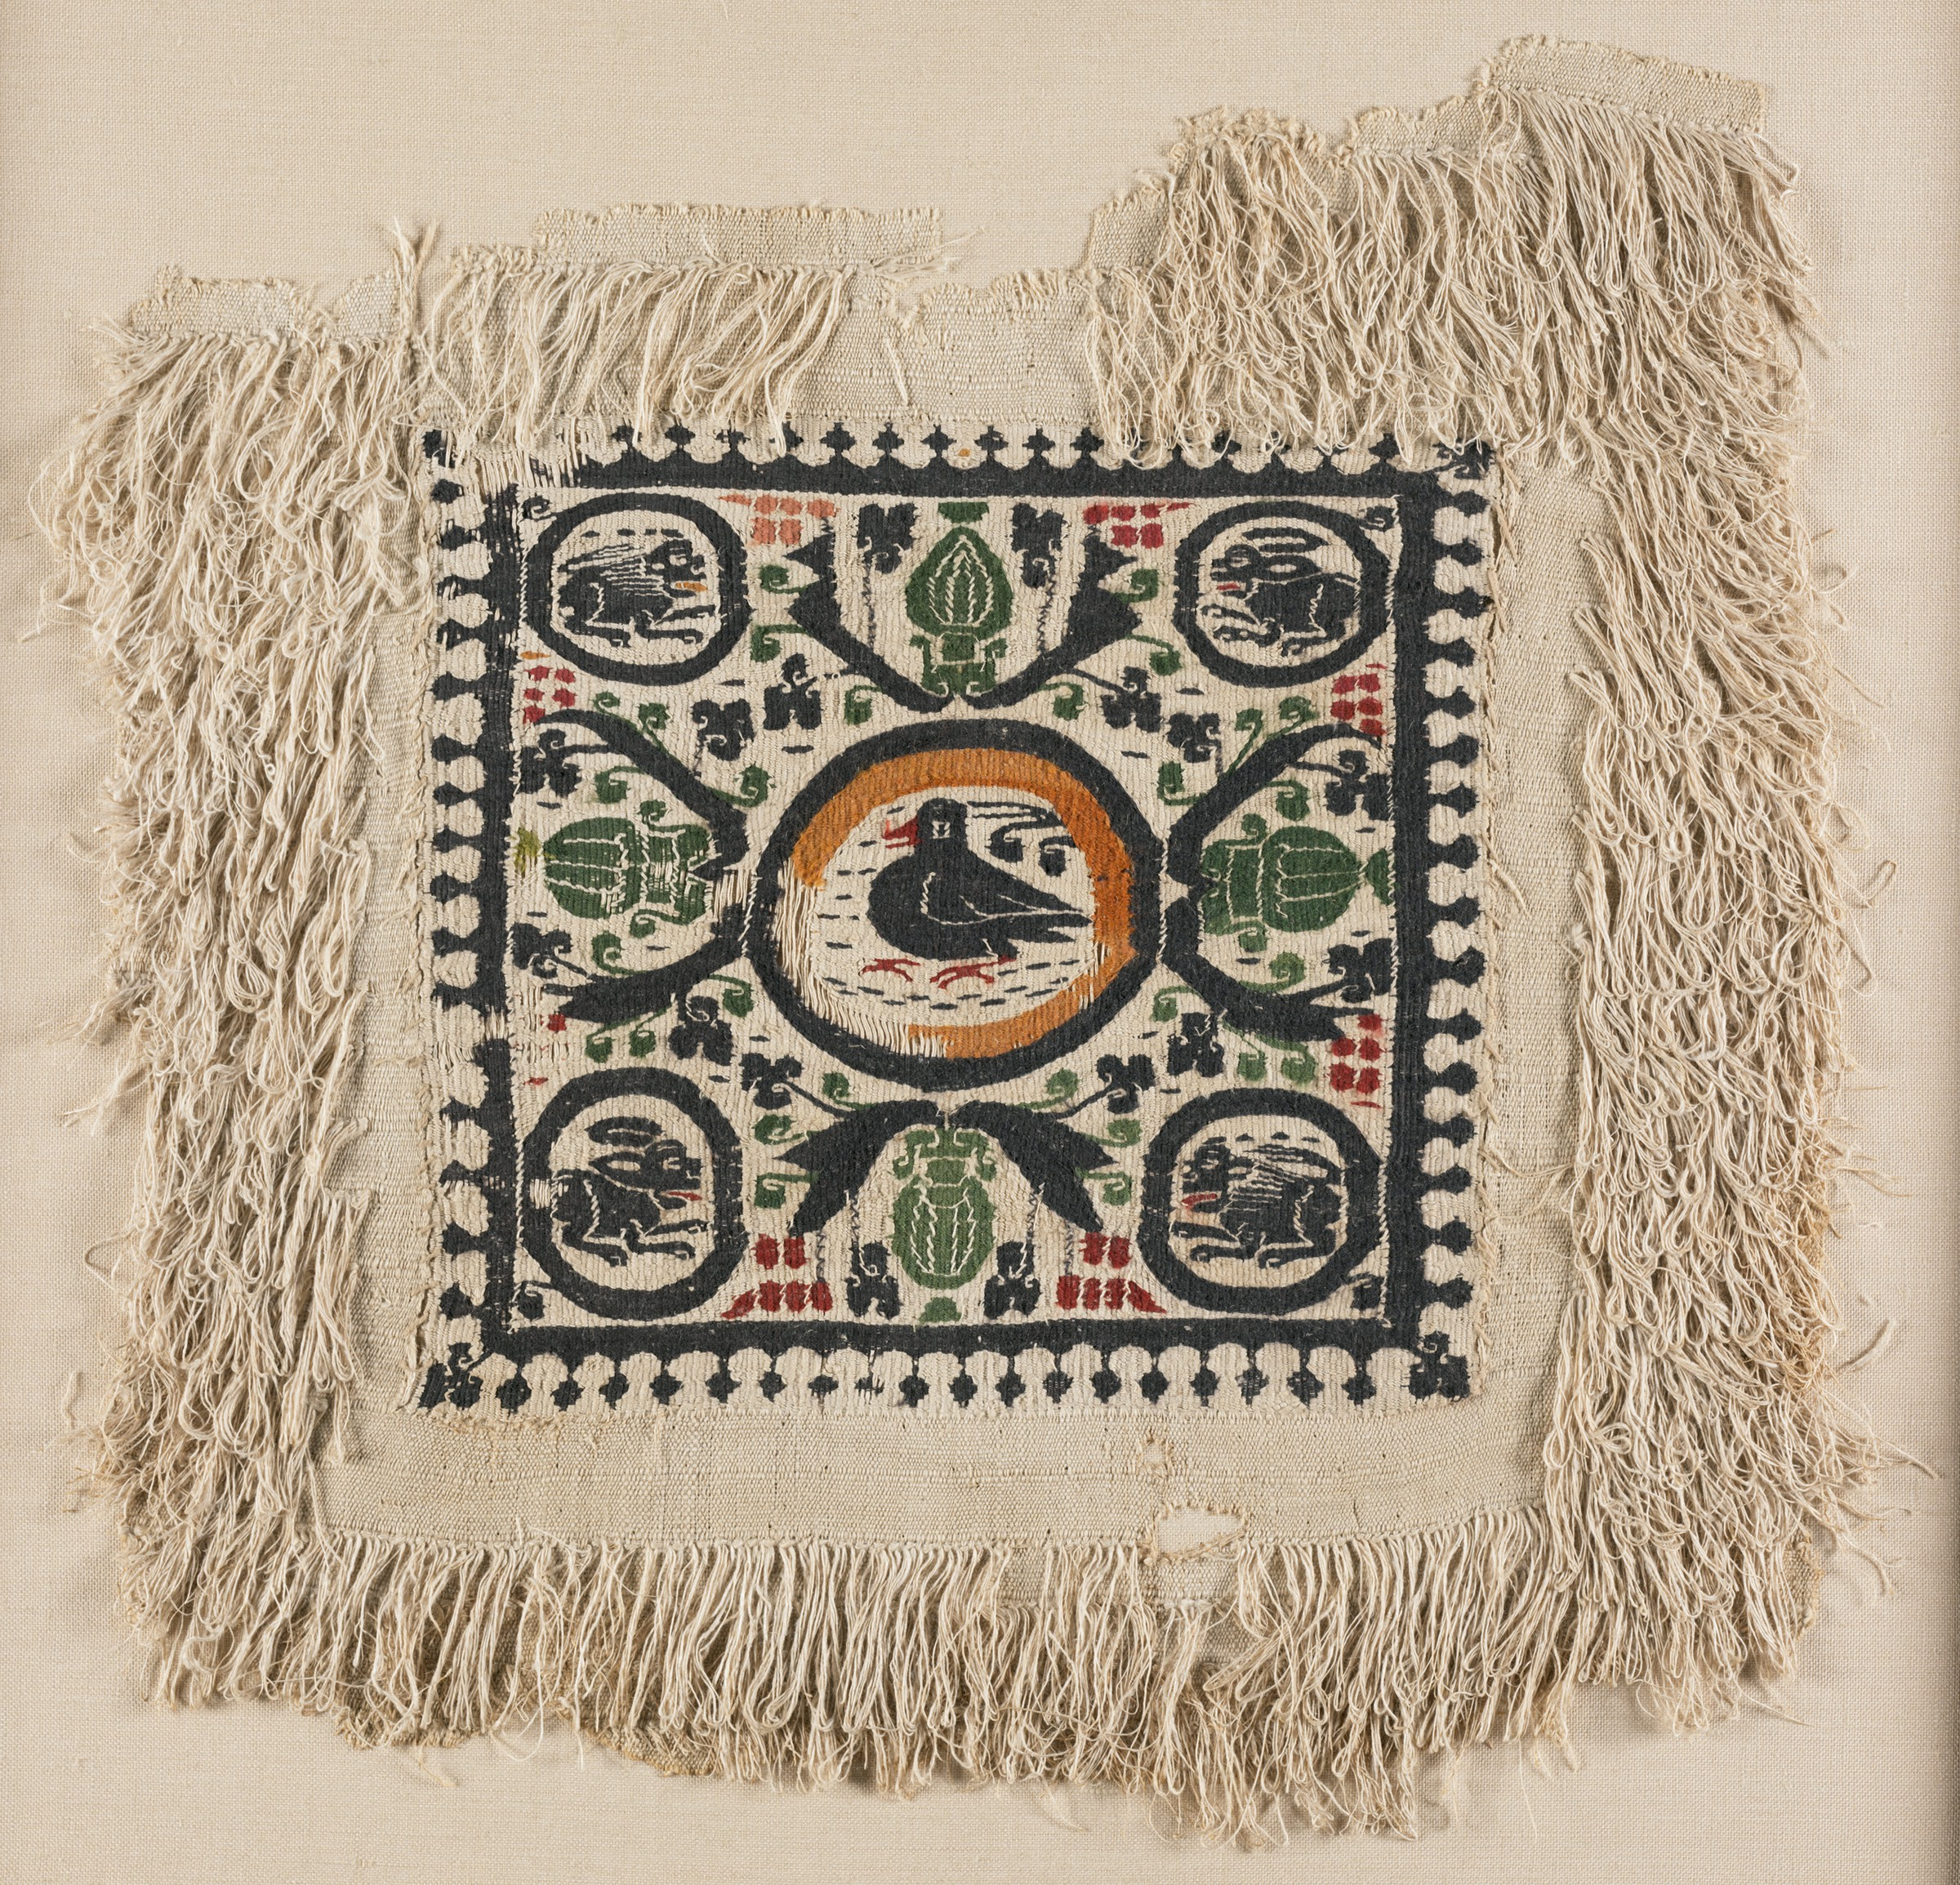 A square piece of beige cloth with looped threads has a smooth inner square with colorful designs. In a central roundel sits a plump bird and in each corner a rabbit or lion. The remainder of the inner square is decorated with four green urns and dark-colored vines with red and pink grapes.